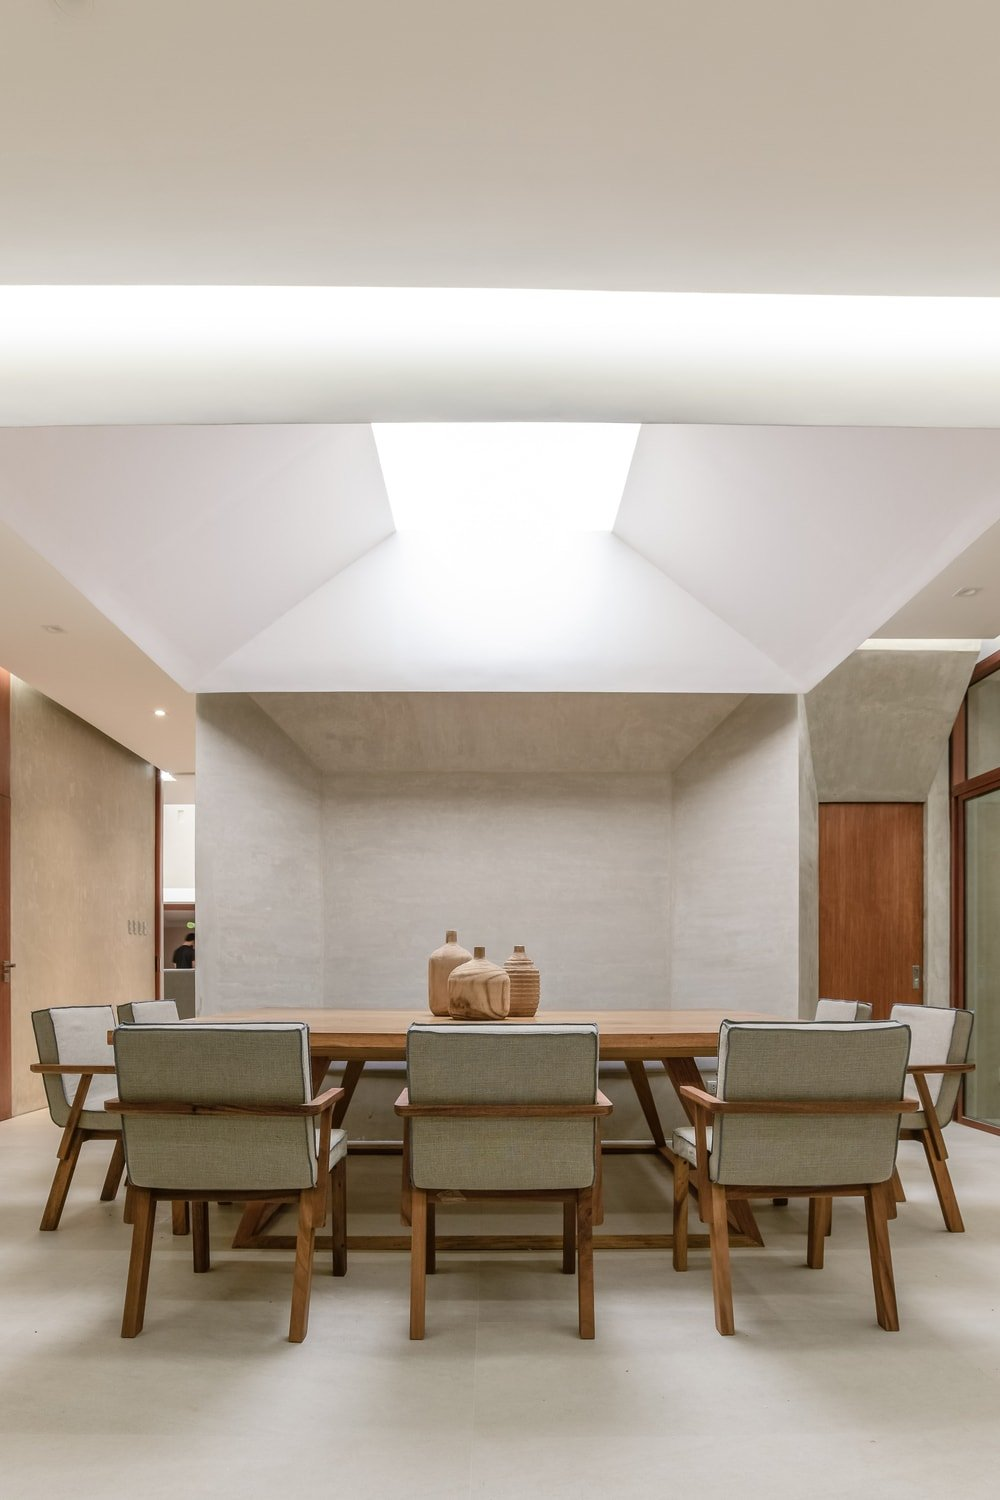 The dining set is topped with a cove ceiling that has a modern lighting in the middle.